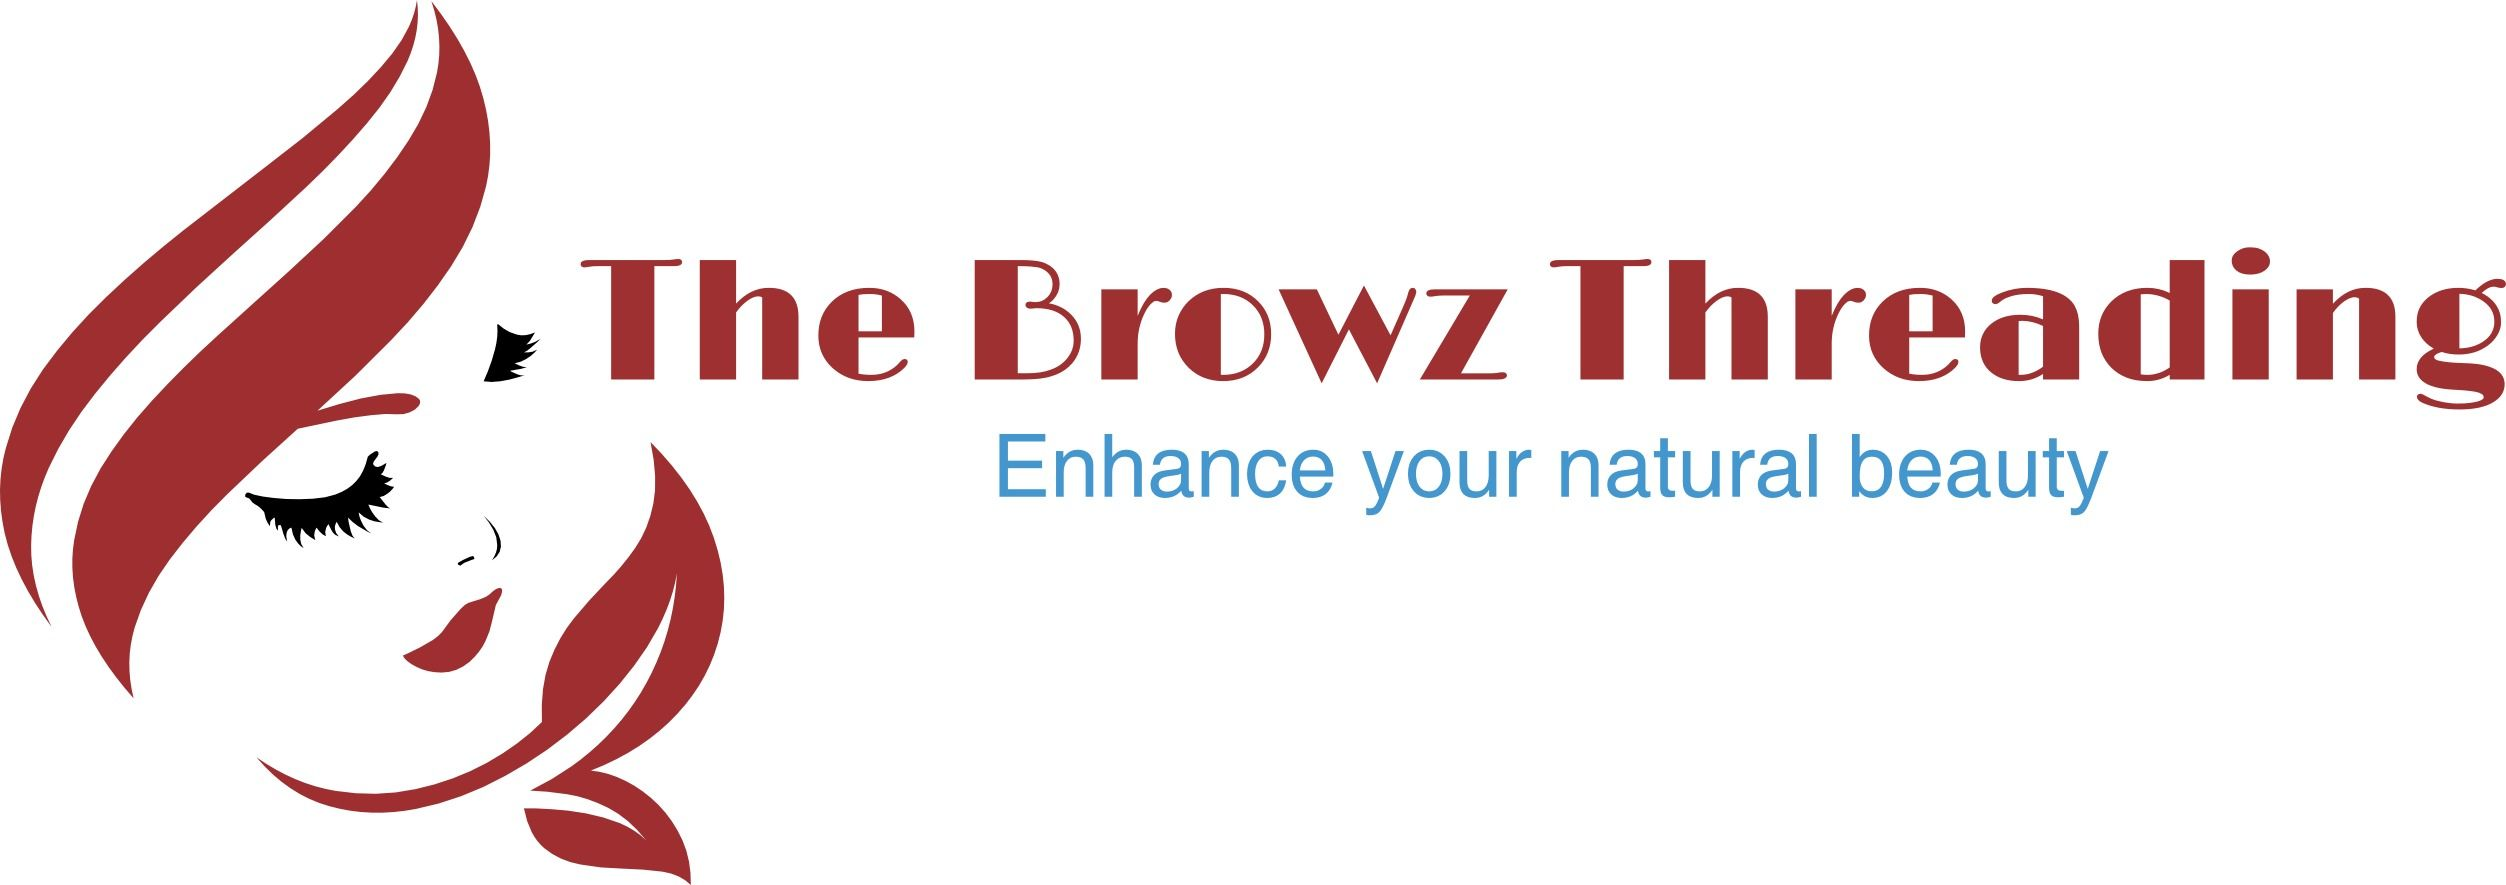 Pin By The Browz Threading On Eyebrow Threading Services Pinterest